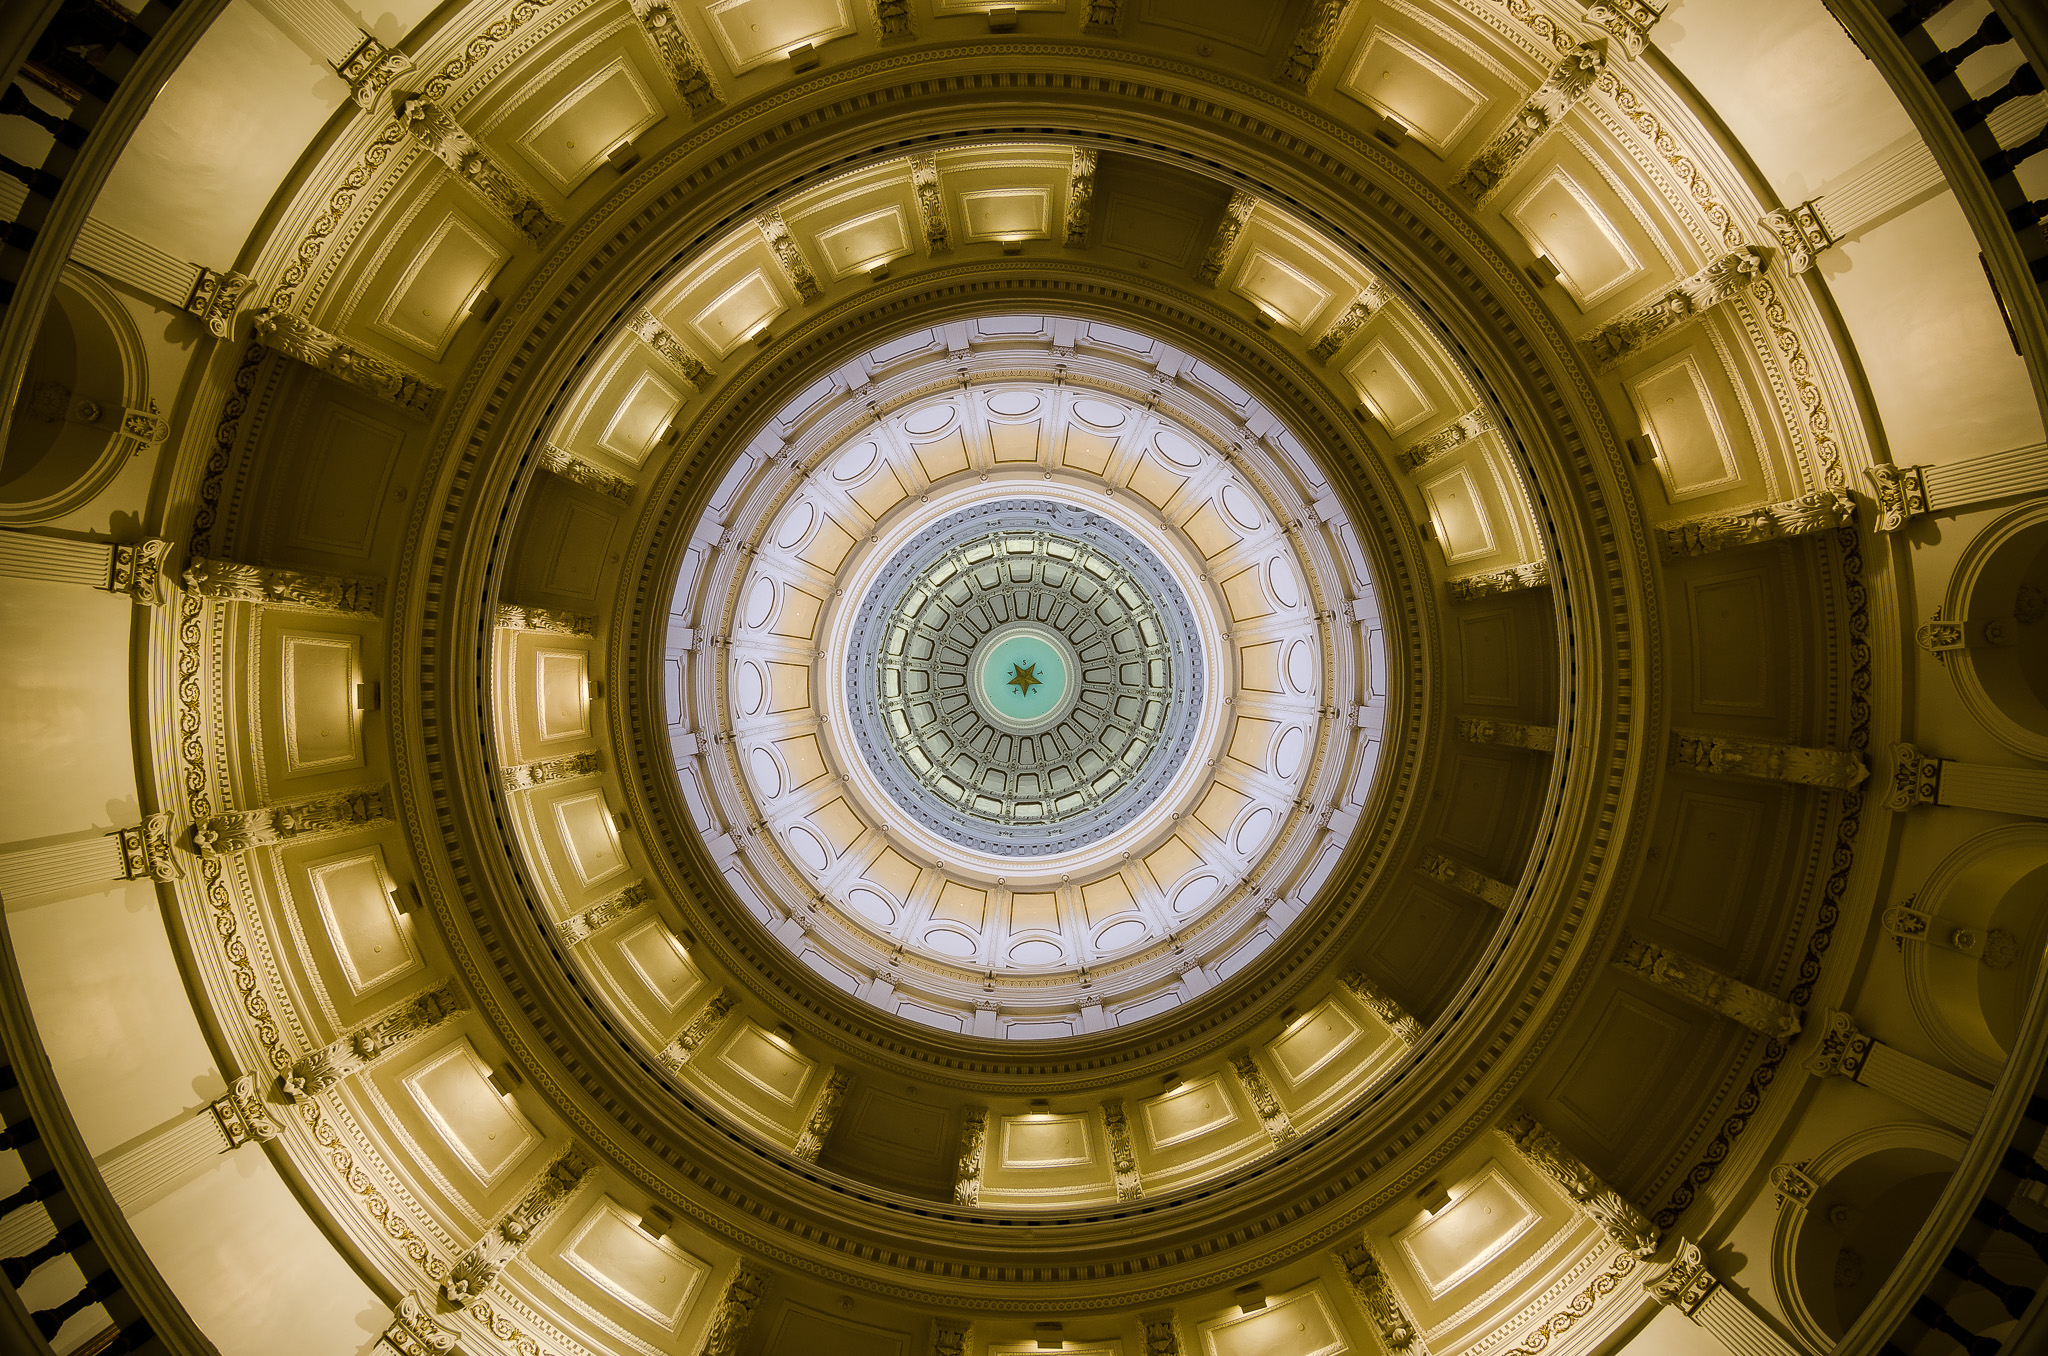 Inside The Dome Of The Texas State Capital